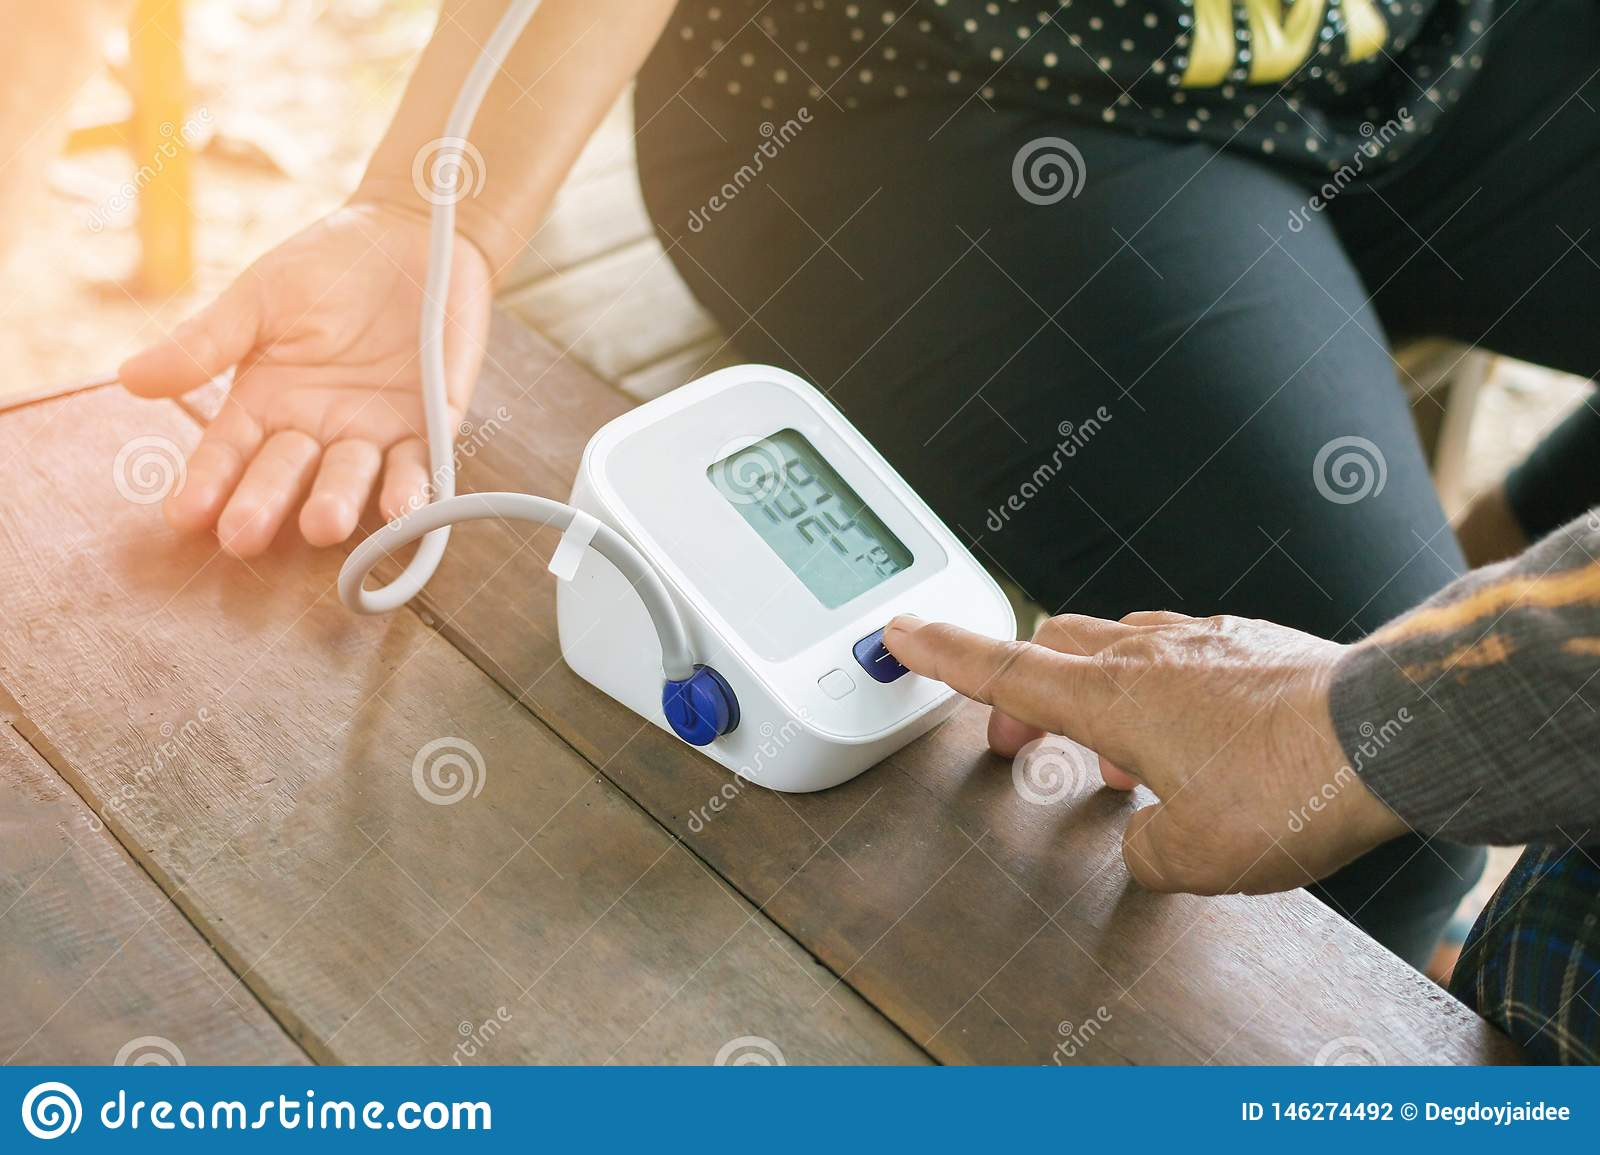 Blood Pressure Monitors with Blood Pressure Monitors, Cancer Patients at home